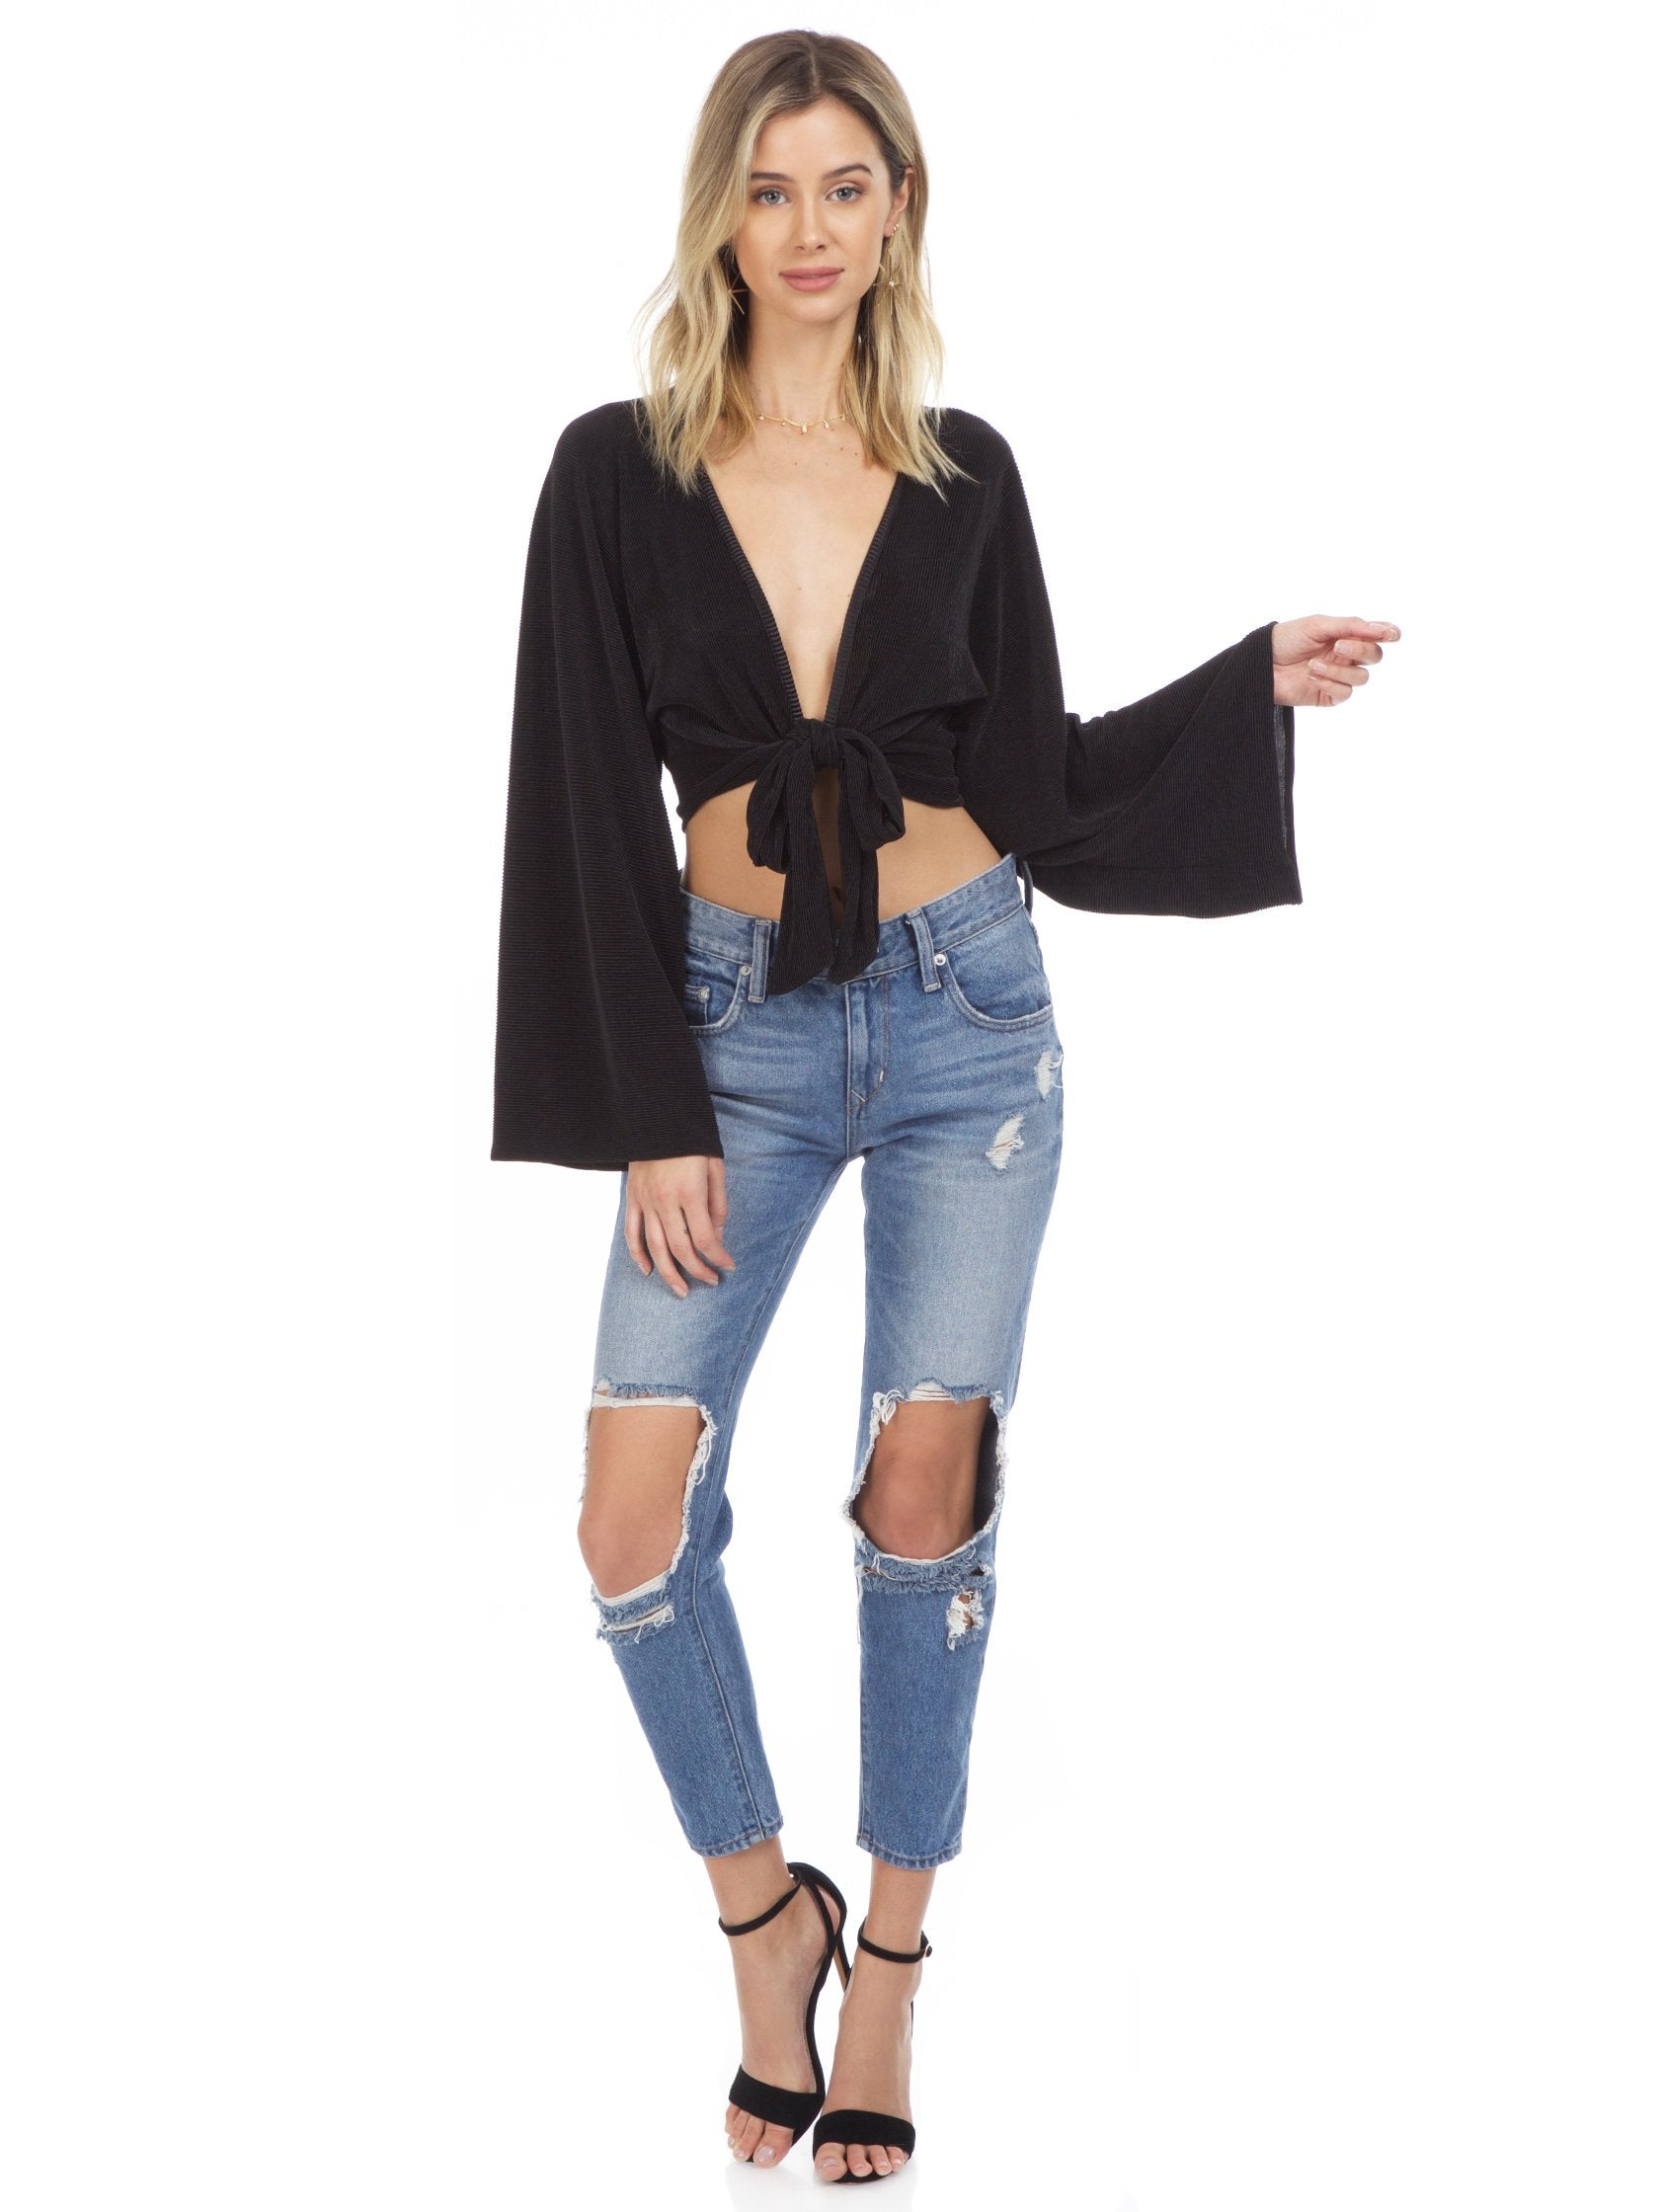 Girl wearing a top rental from Blue Life called Crystal Pleated Kimono Tie Front Top